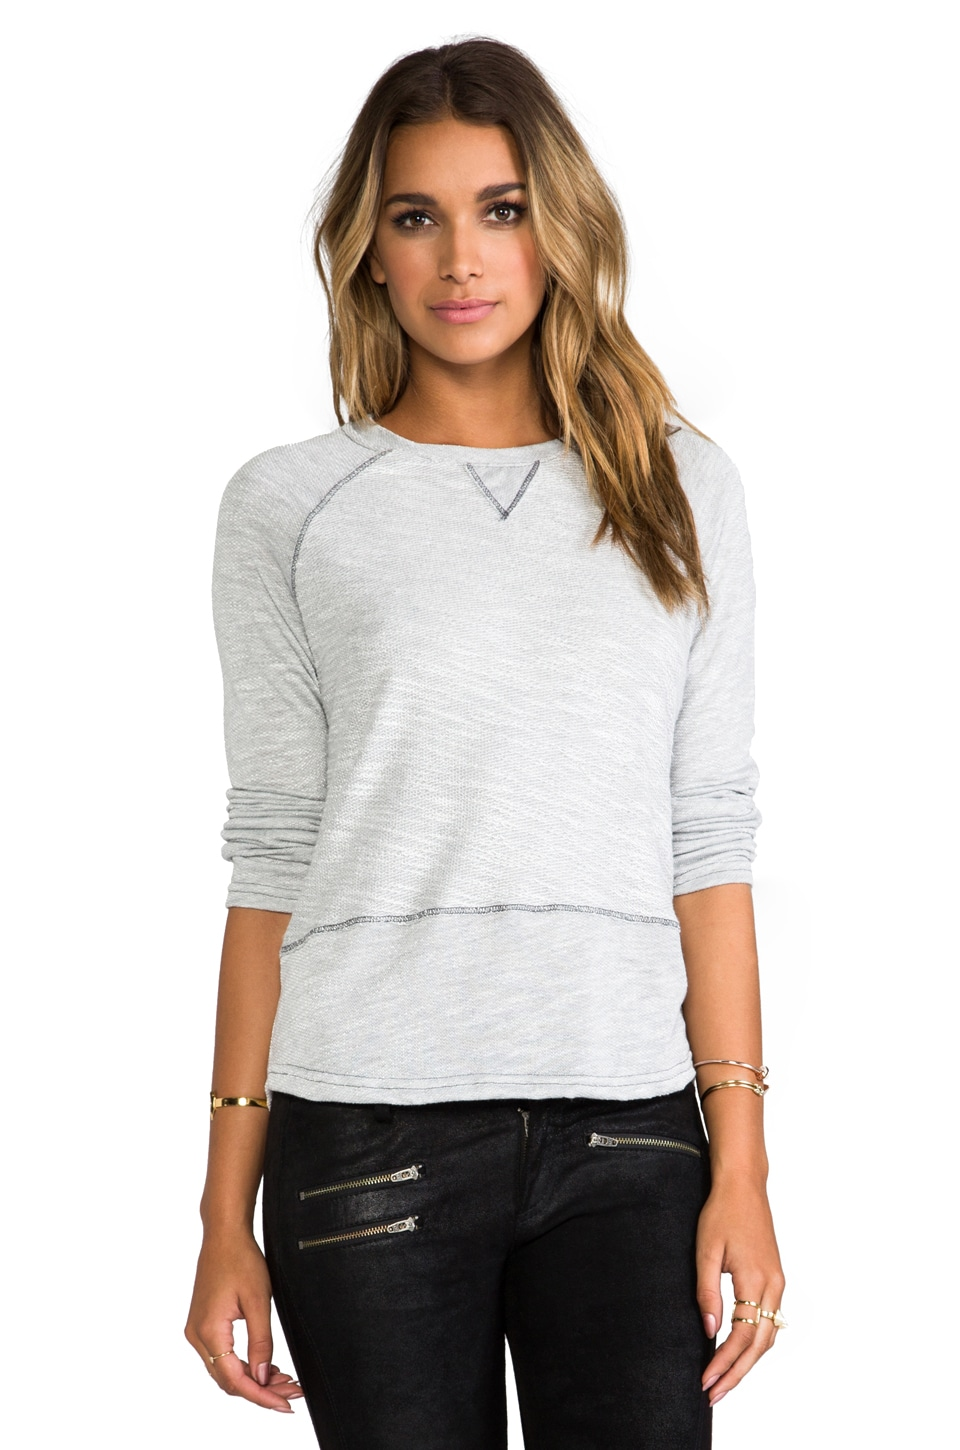 Gypsy 05 Lounge Raglan Sweater in Silver